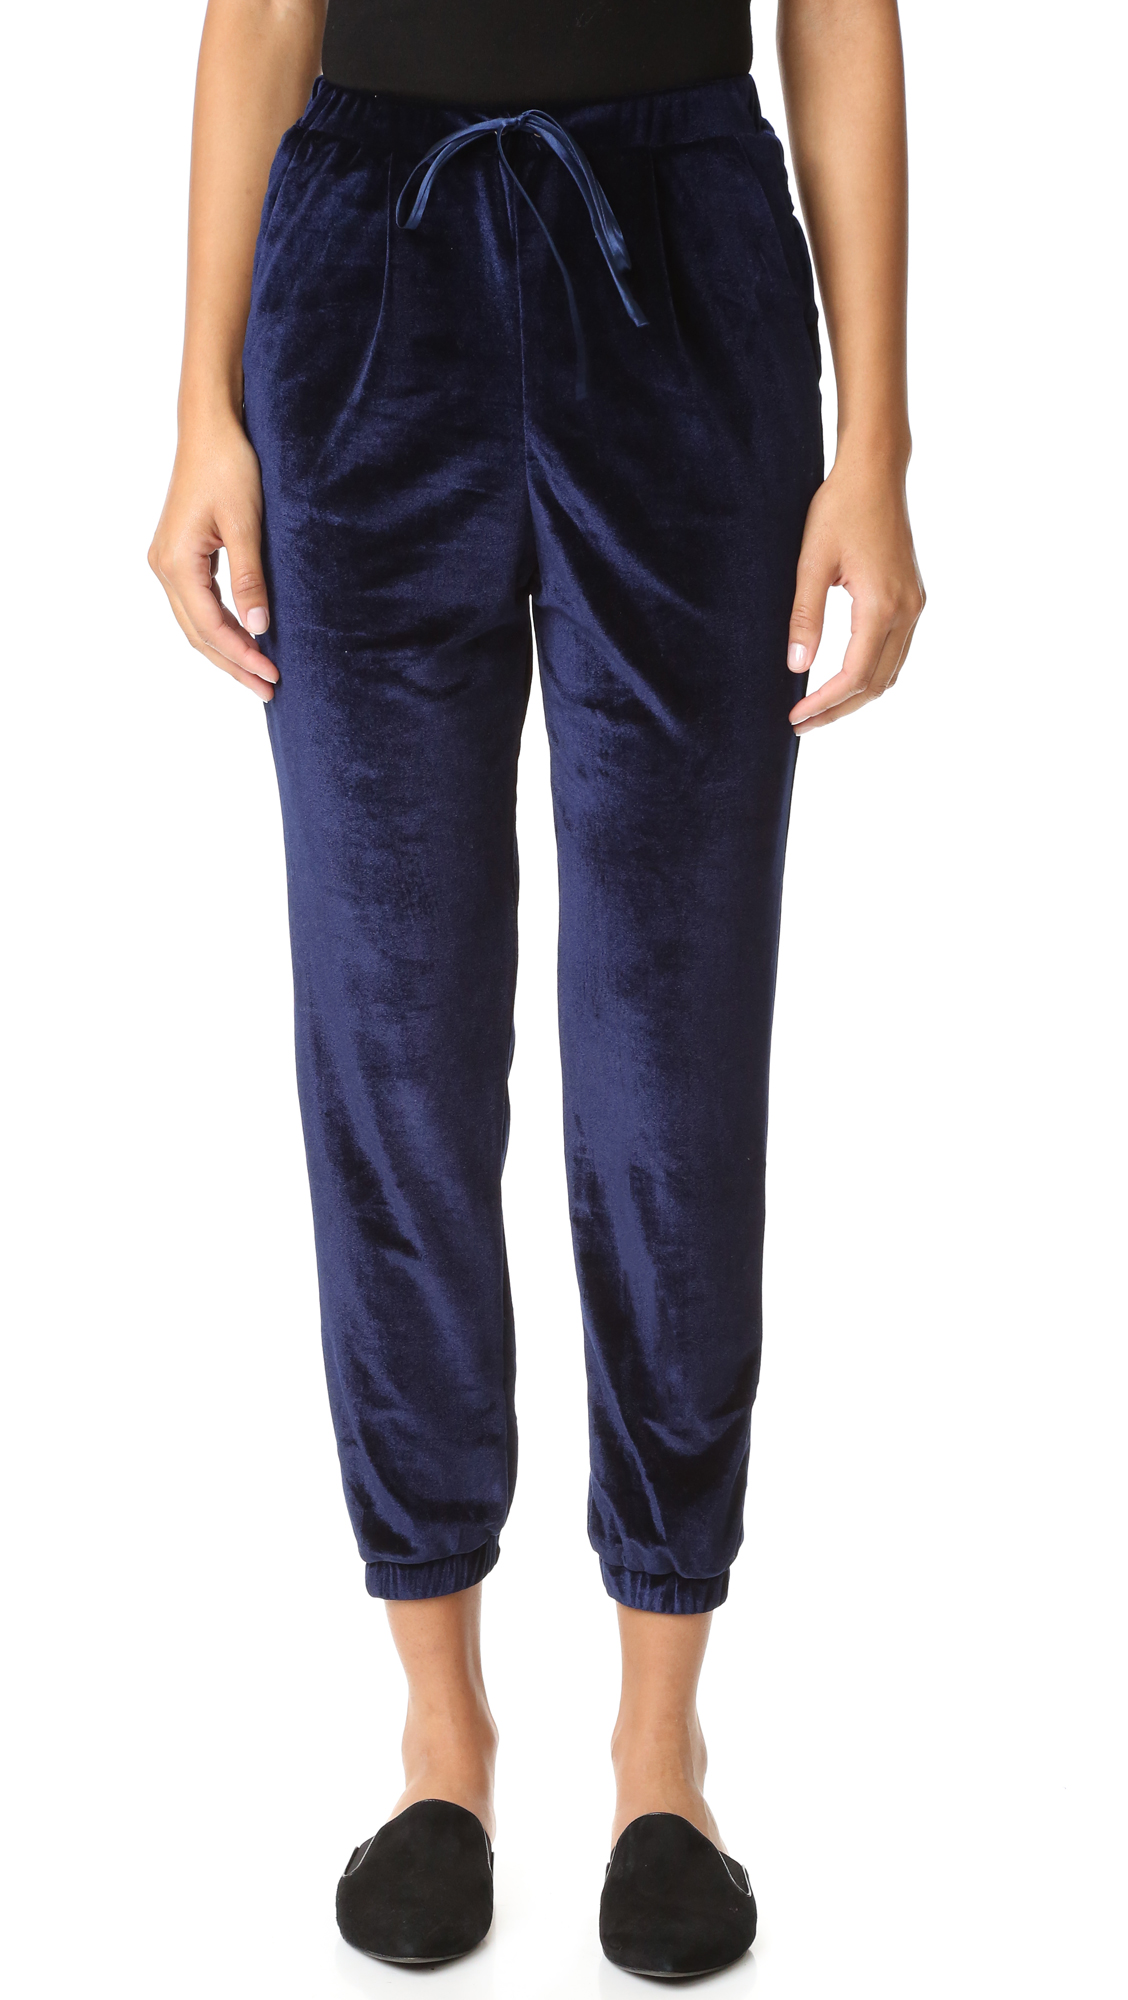 Slouchy ENGLISH FACTORY pants in soft velour. Gathered elastic cuffs. Slant hip pockets and faux welt back pockets. Elastic waistband with drawstring. Fabric: Velour. 100% polyester. Wash cold. Imported, China. Measurements Rise: 12.5in / 32cm Inseam: 27.25in / 69cm